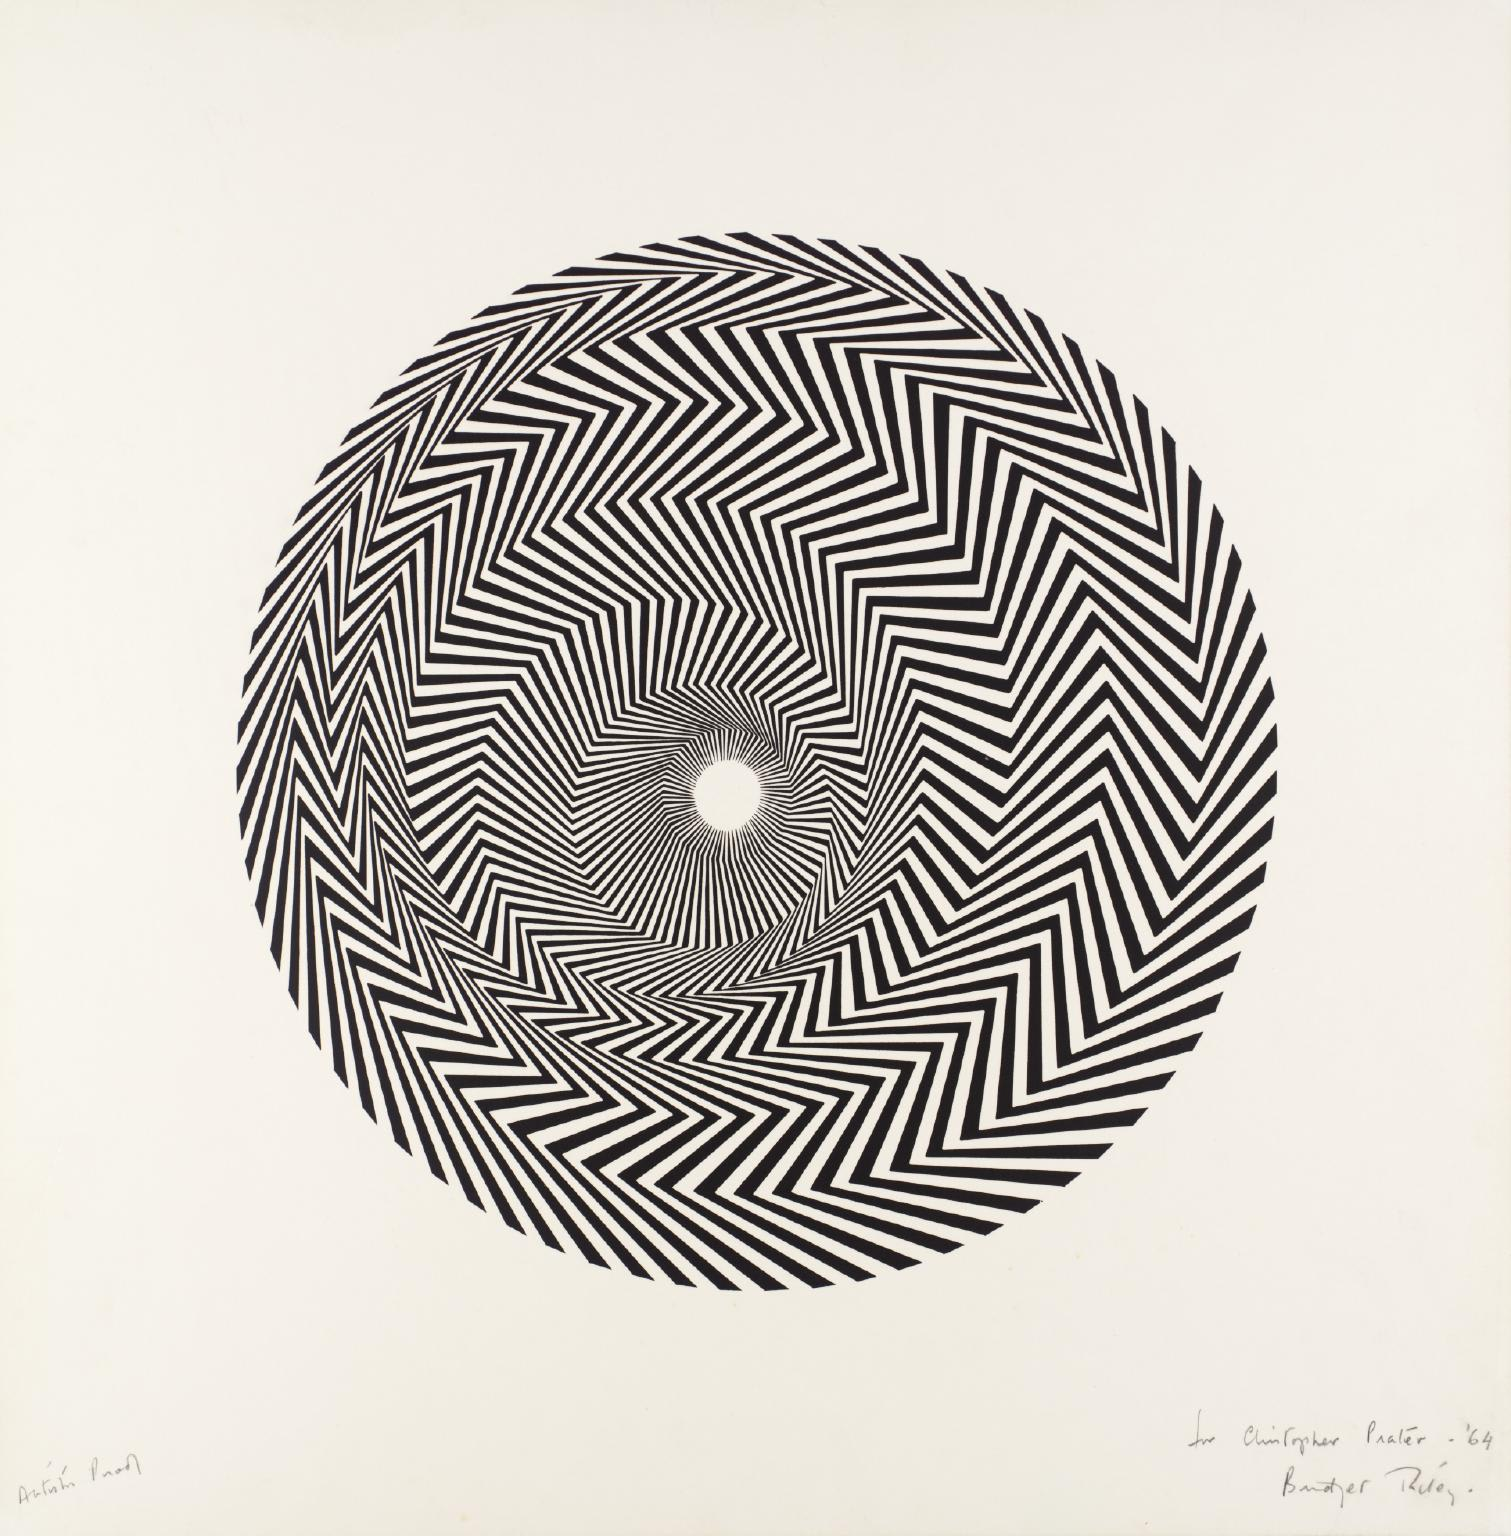 Bridget Riley, Blaze